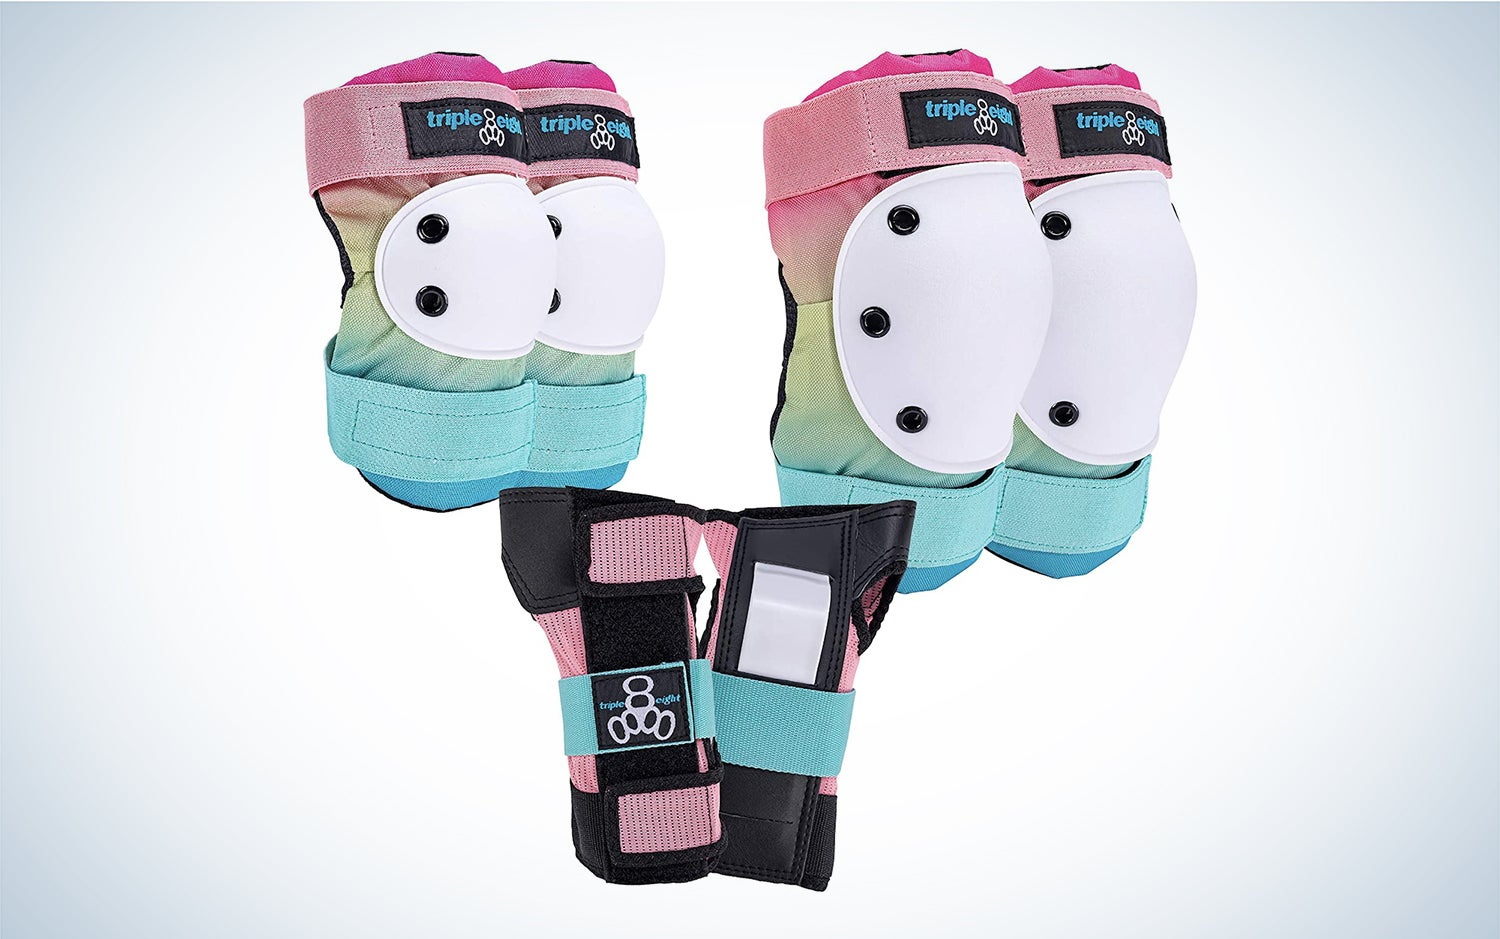 a set of protective pads in pastel rainbow colors